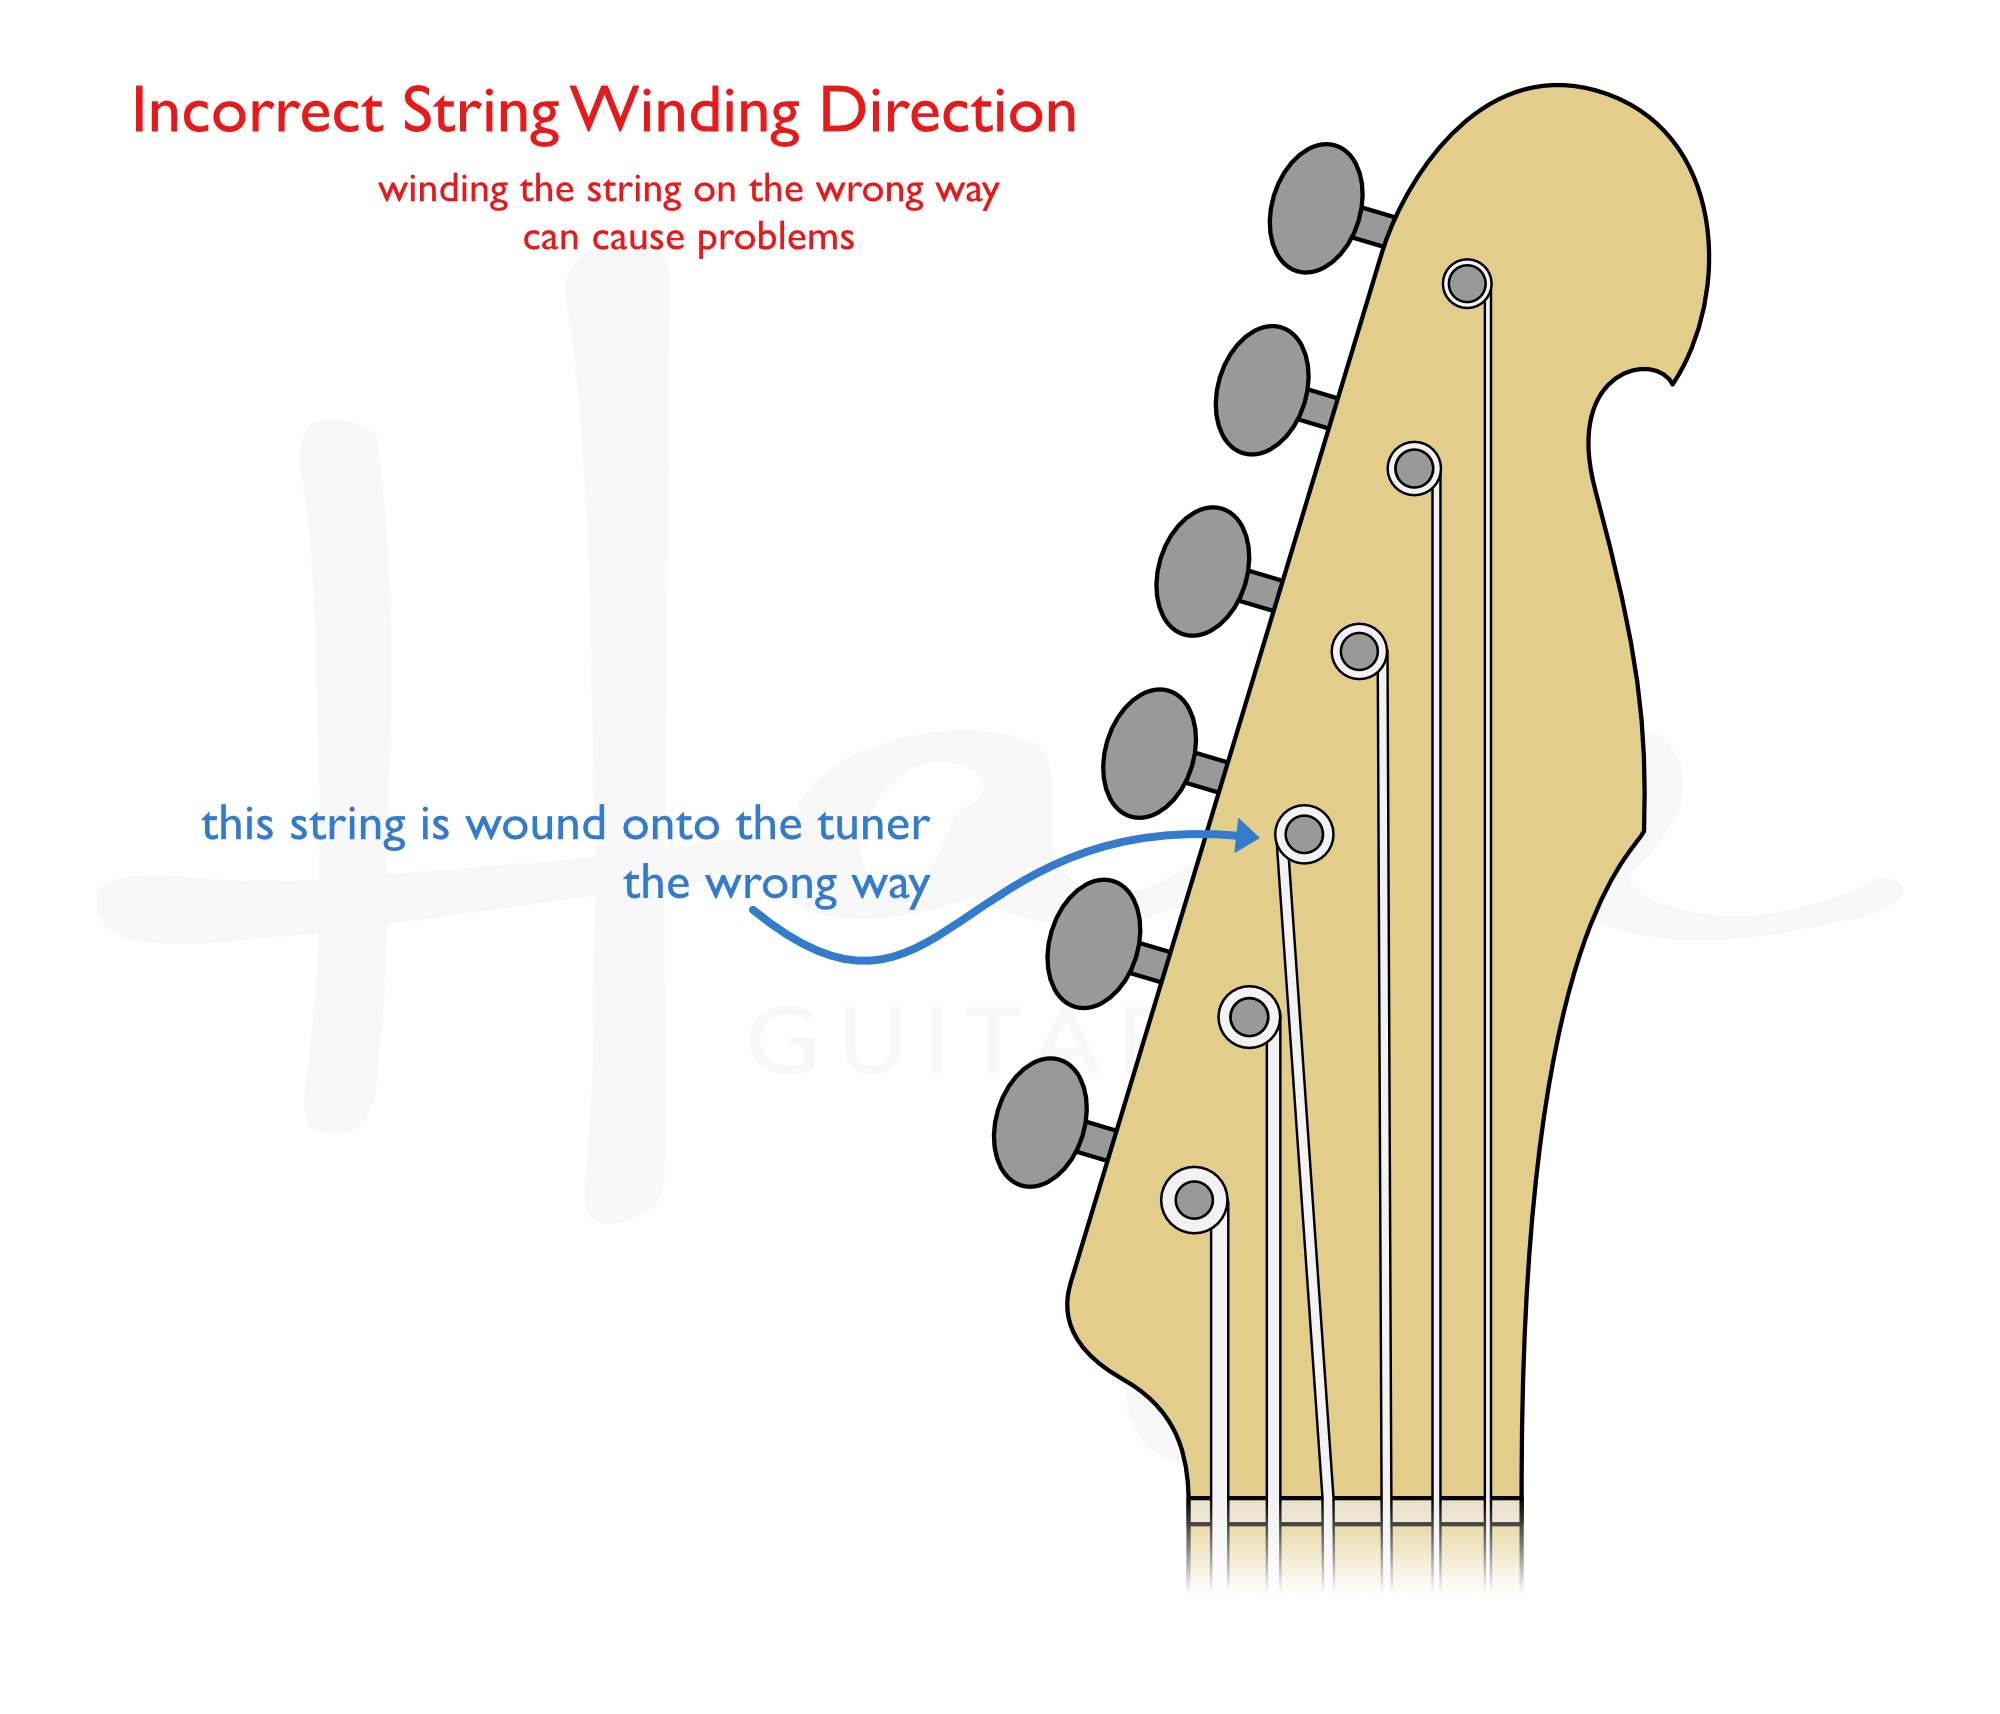 Don't wind the string on the wrong way. It can cause hassle.